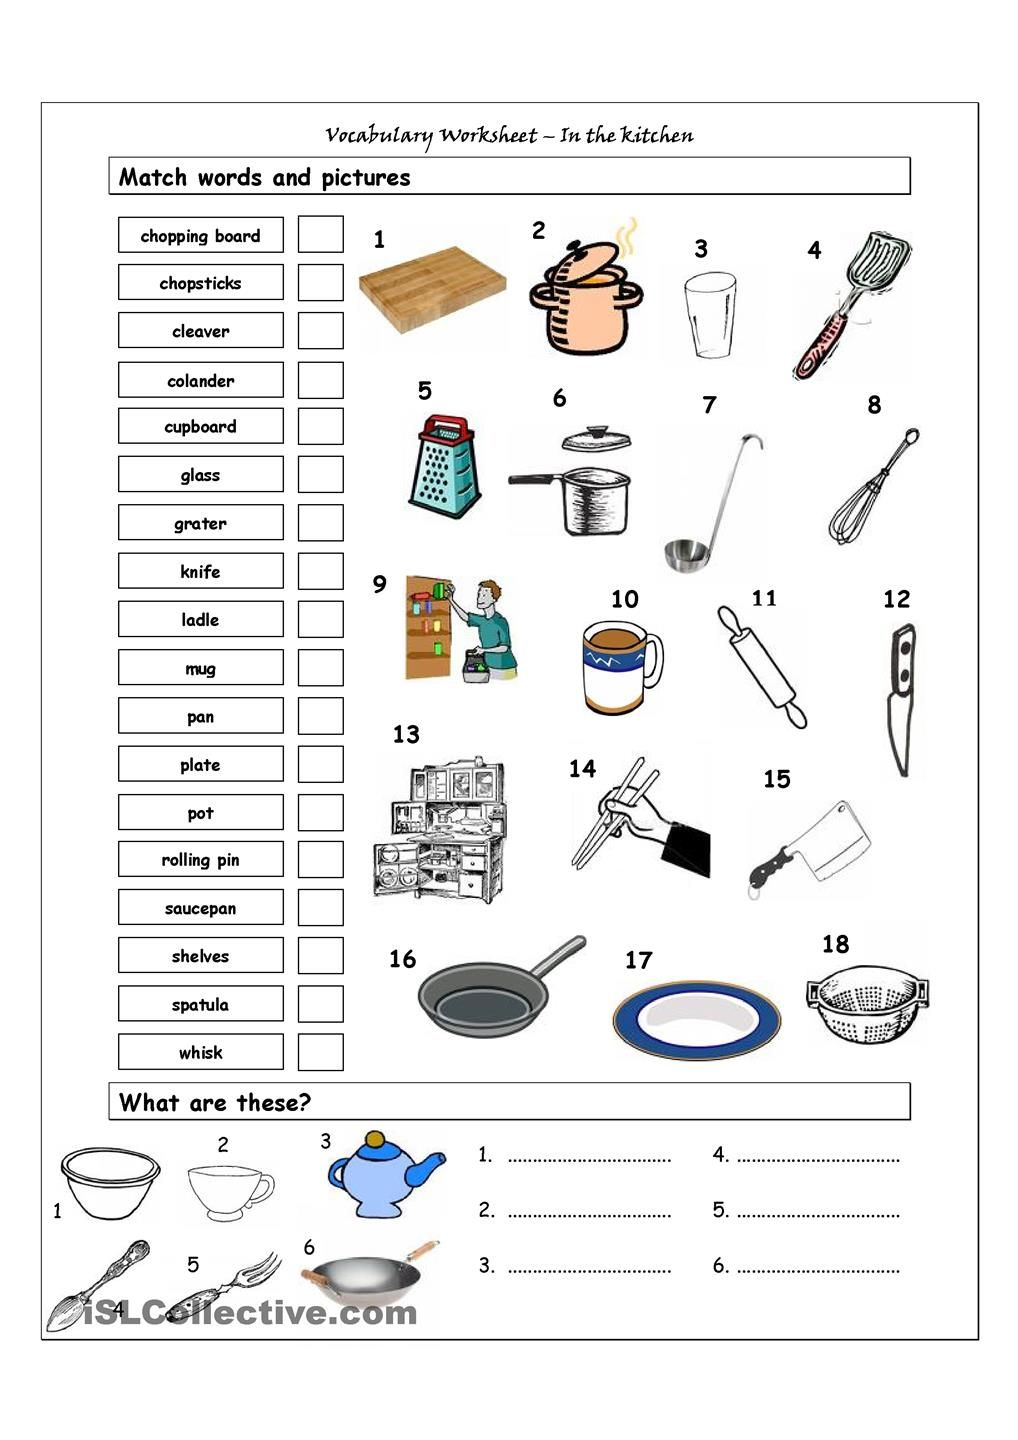 Vocabulary Matching Worksheet In the kitchen Life